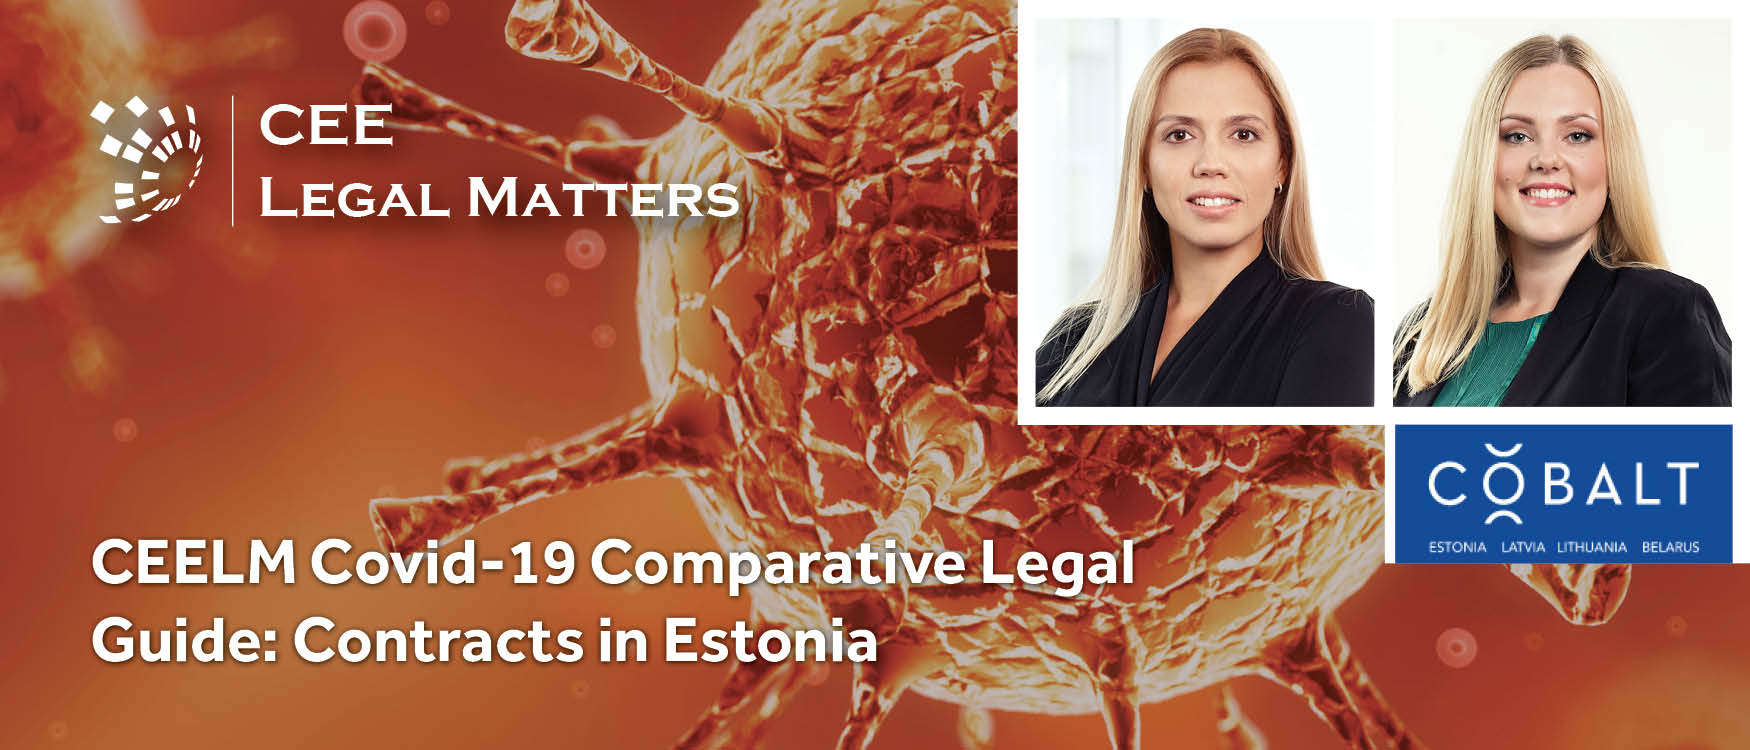 CEELM Covid-19 Comparative Legal Guide: Contracts in Estonia